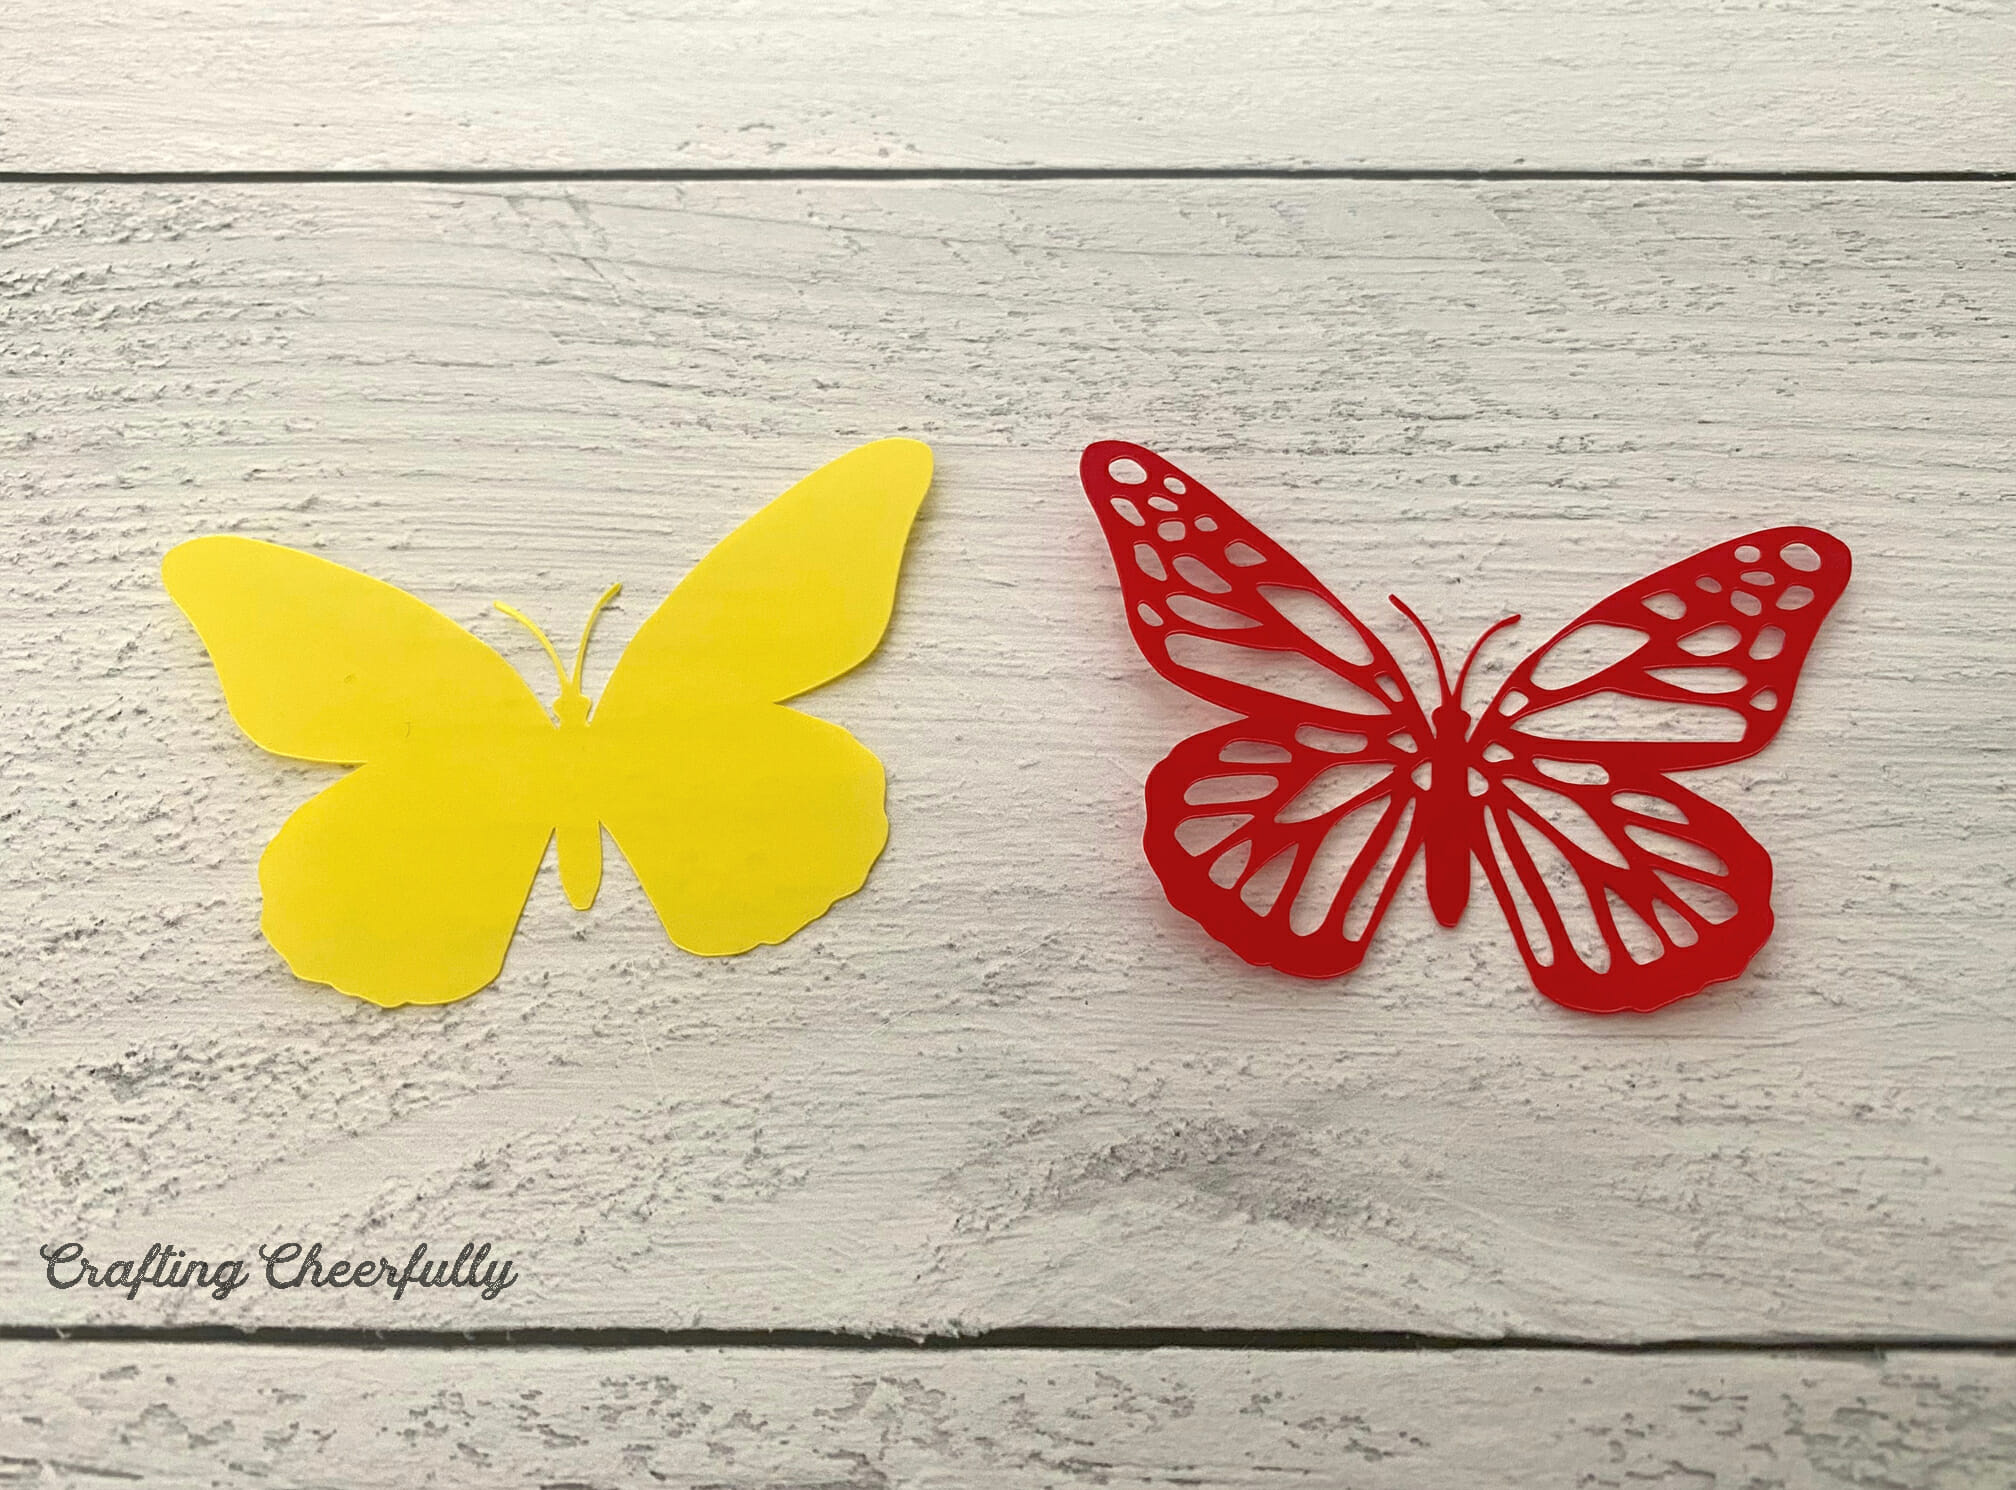 A yellow butterfly and a red butterfly with a cut out design lay next to each other.